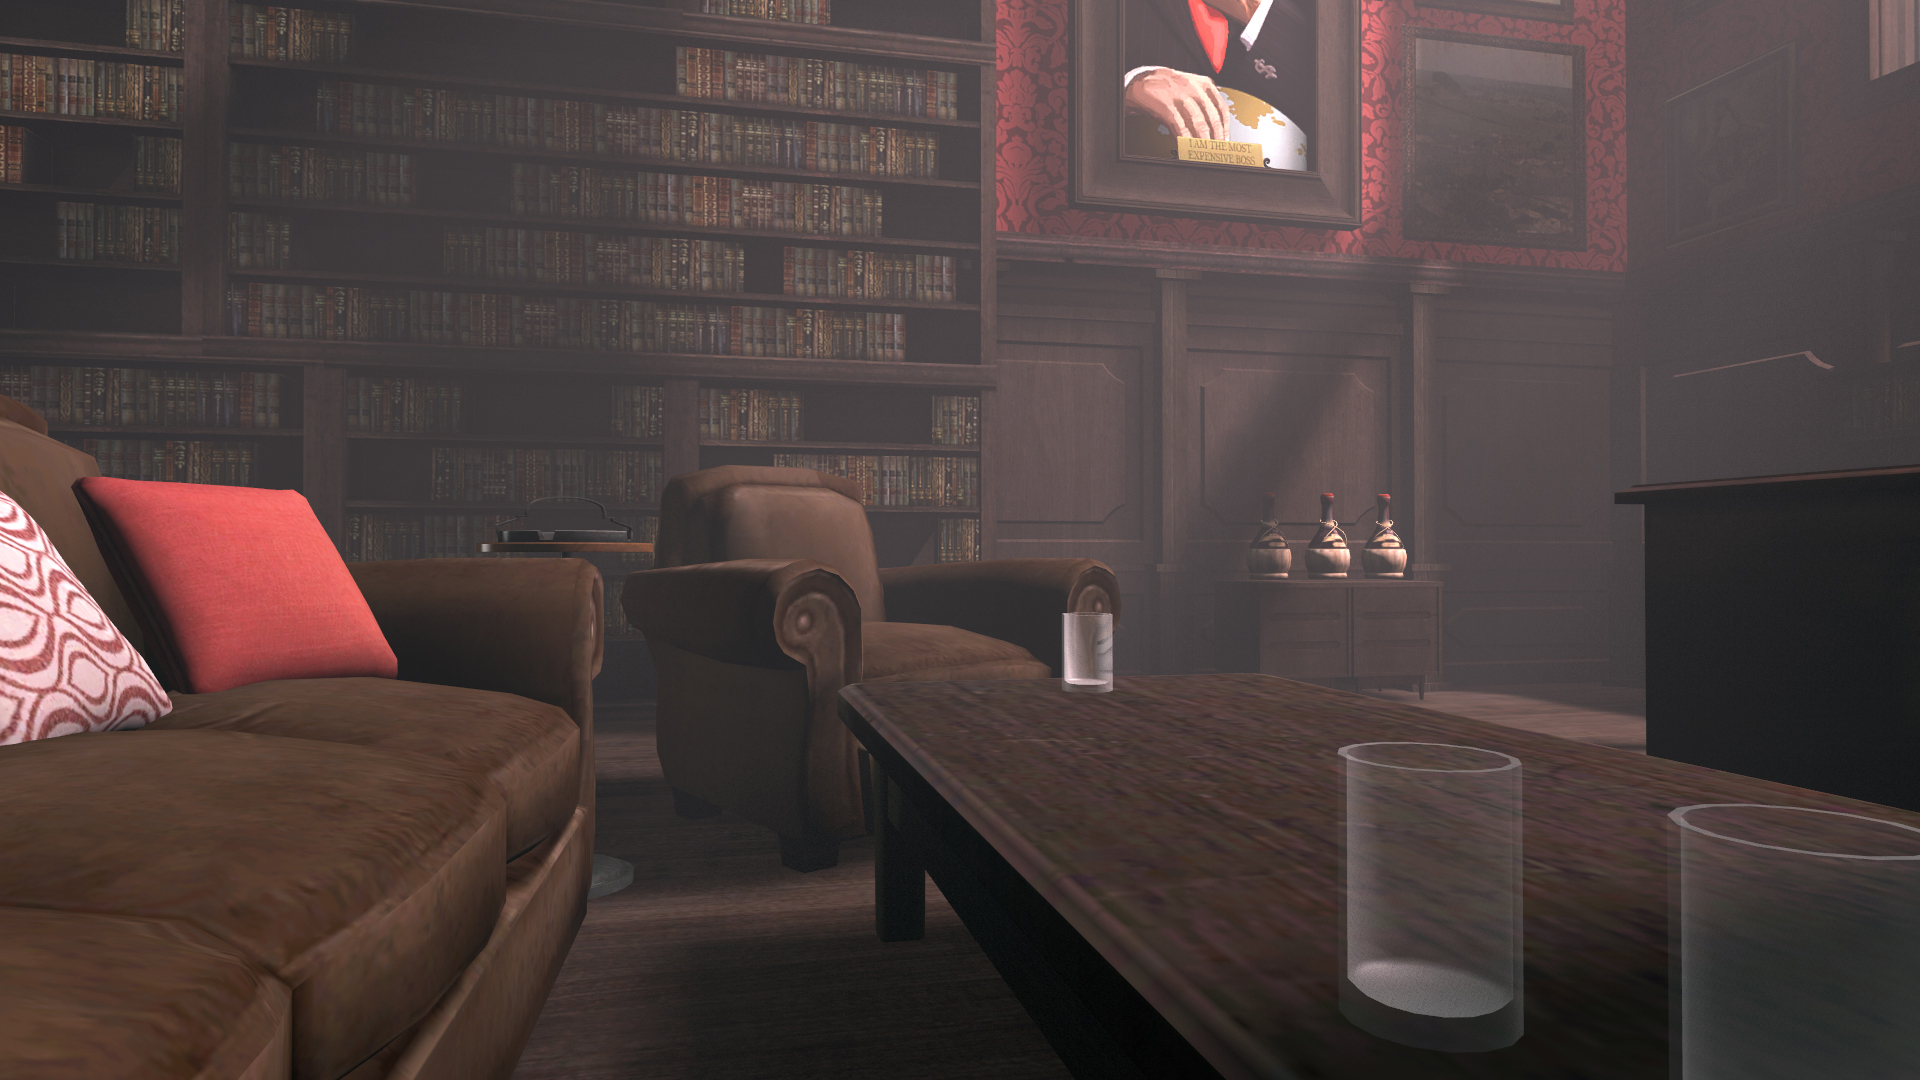 ©, Galactic Cafe, The Stanley Parable